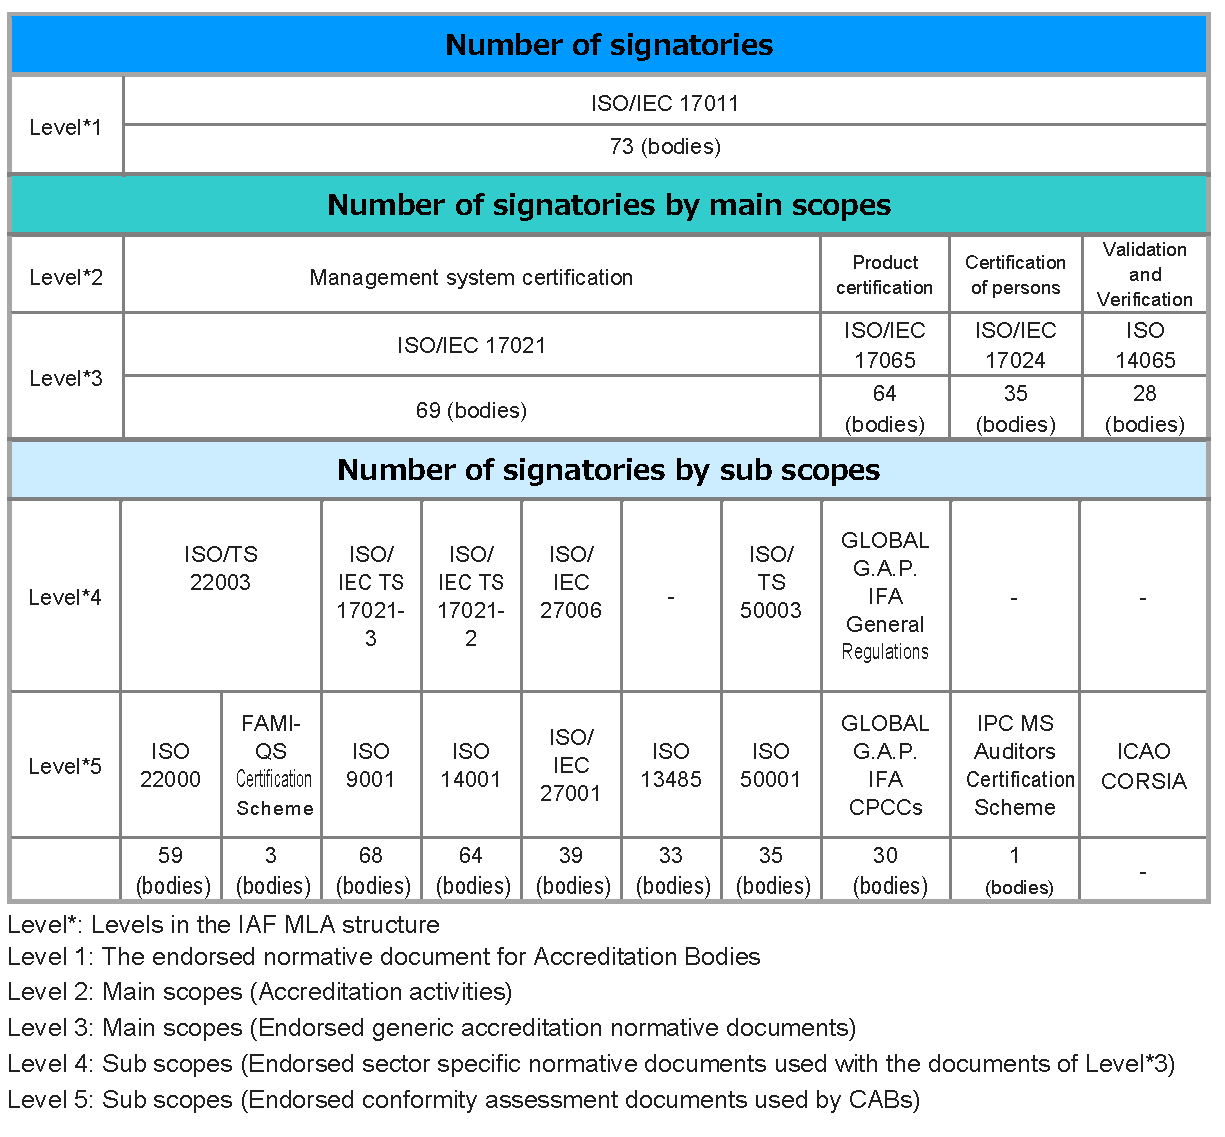 This image is the table which explains the number of signatories, number of signatories by main scopes and number of signatories by sub scopes. IAF official website is also available to see details of the table.